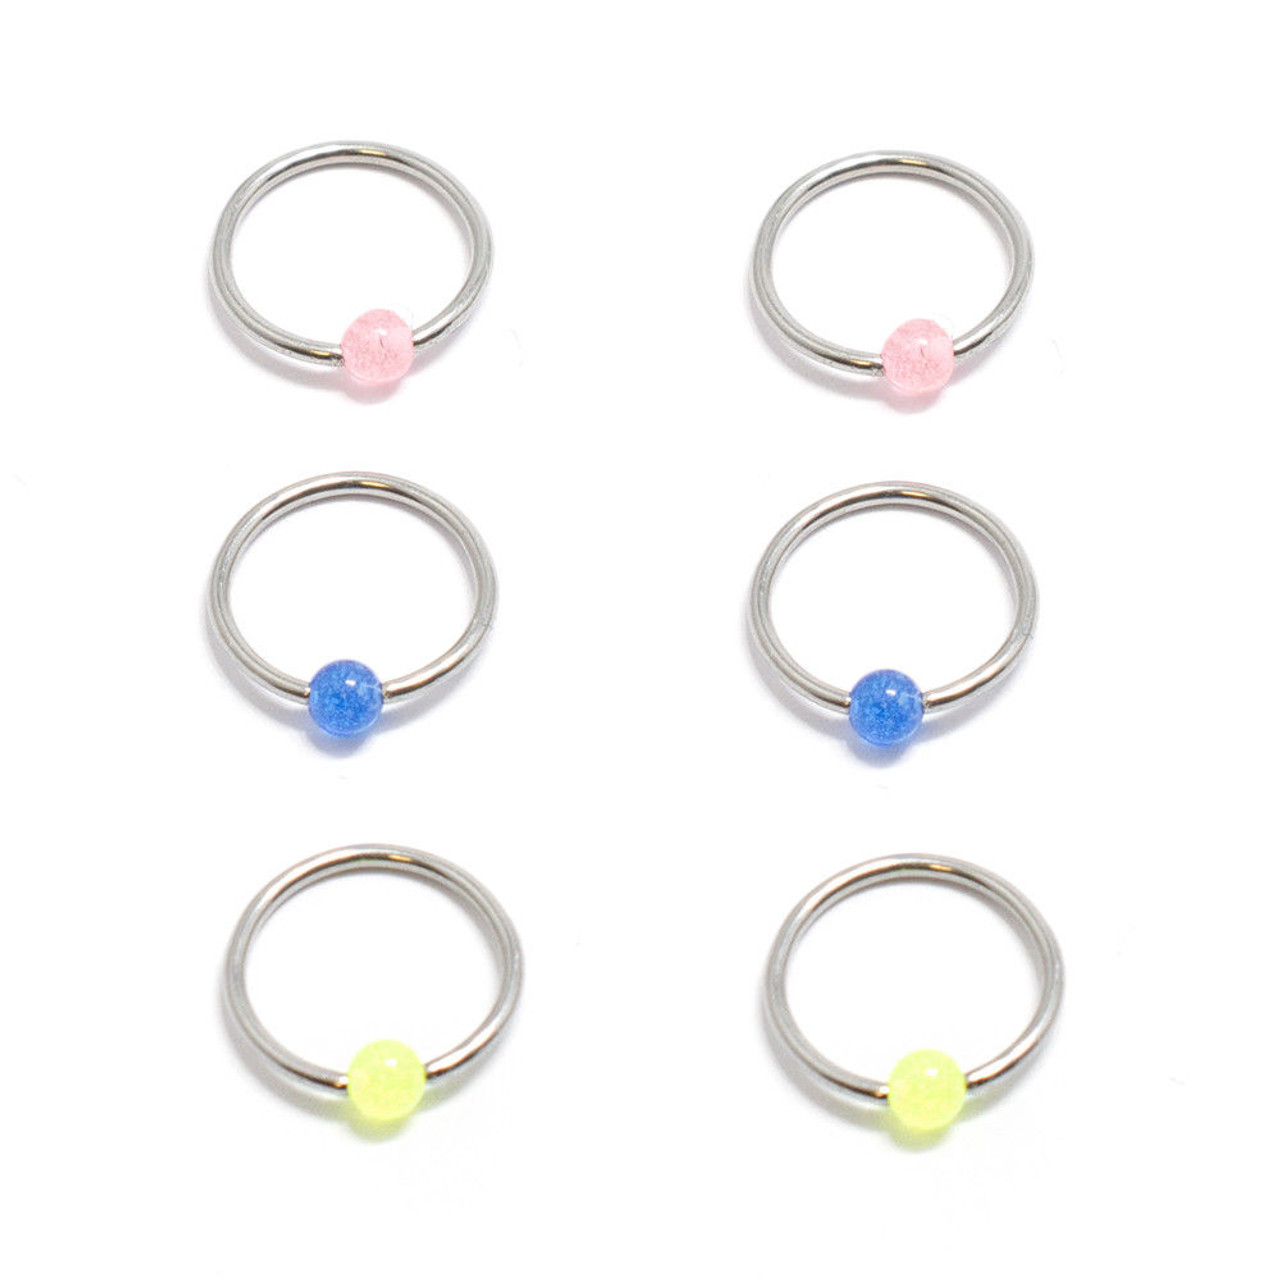 """Details about  /Captive Nipple Ring Heavy 6 Gauge 5//8/"""" Acrylic Green 8mm Ball Body Jewelry"""